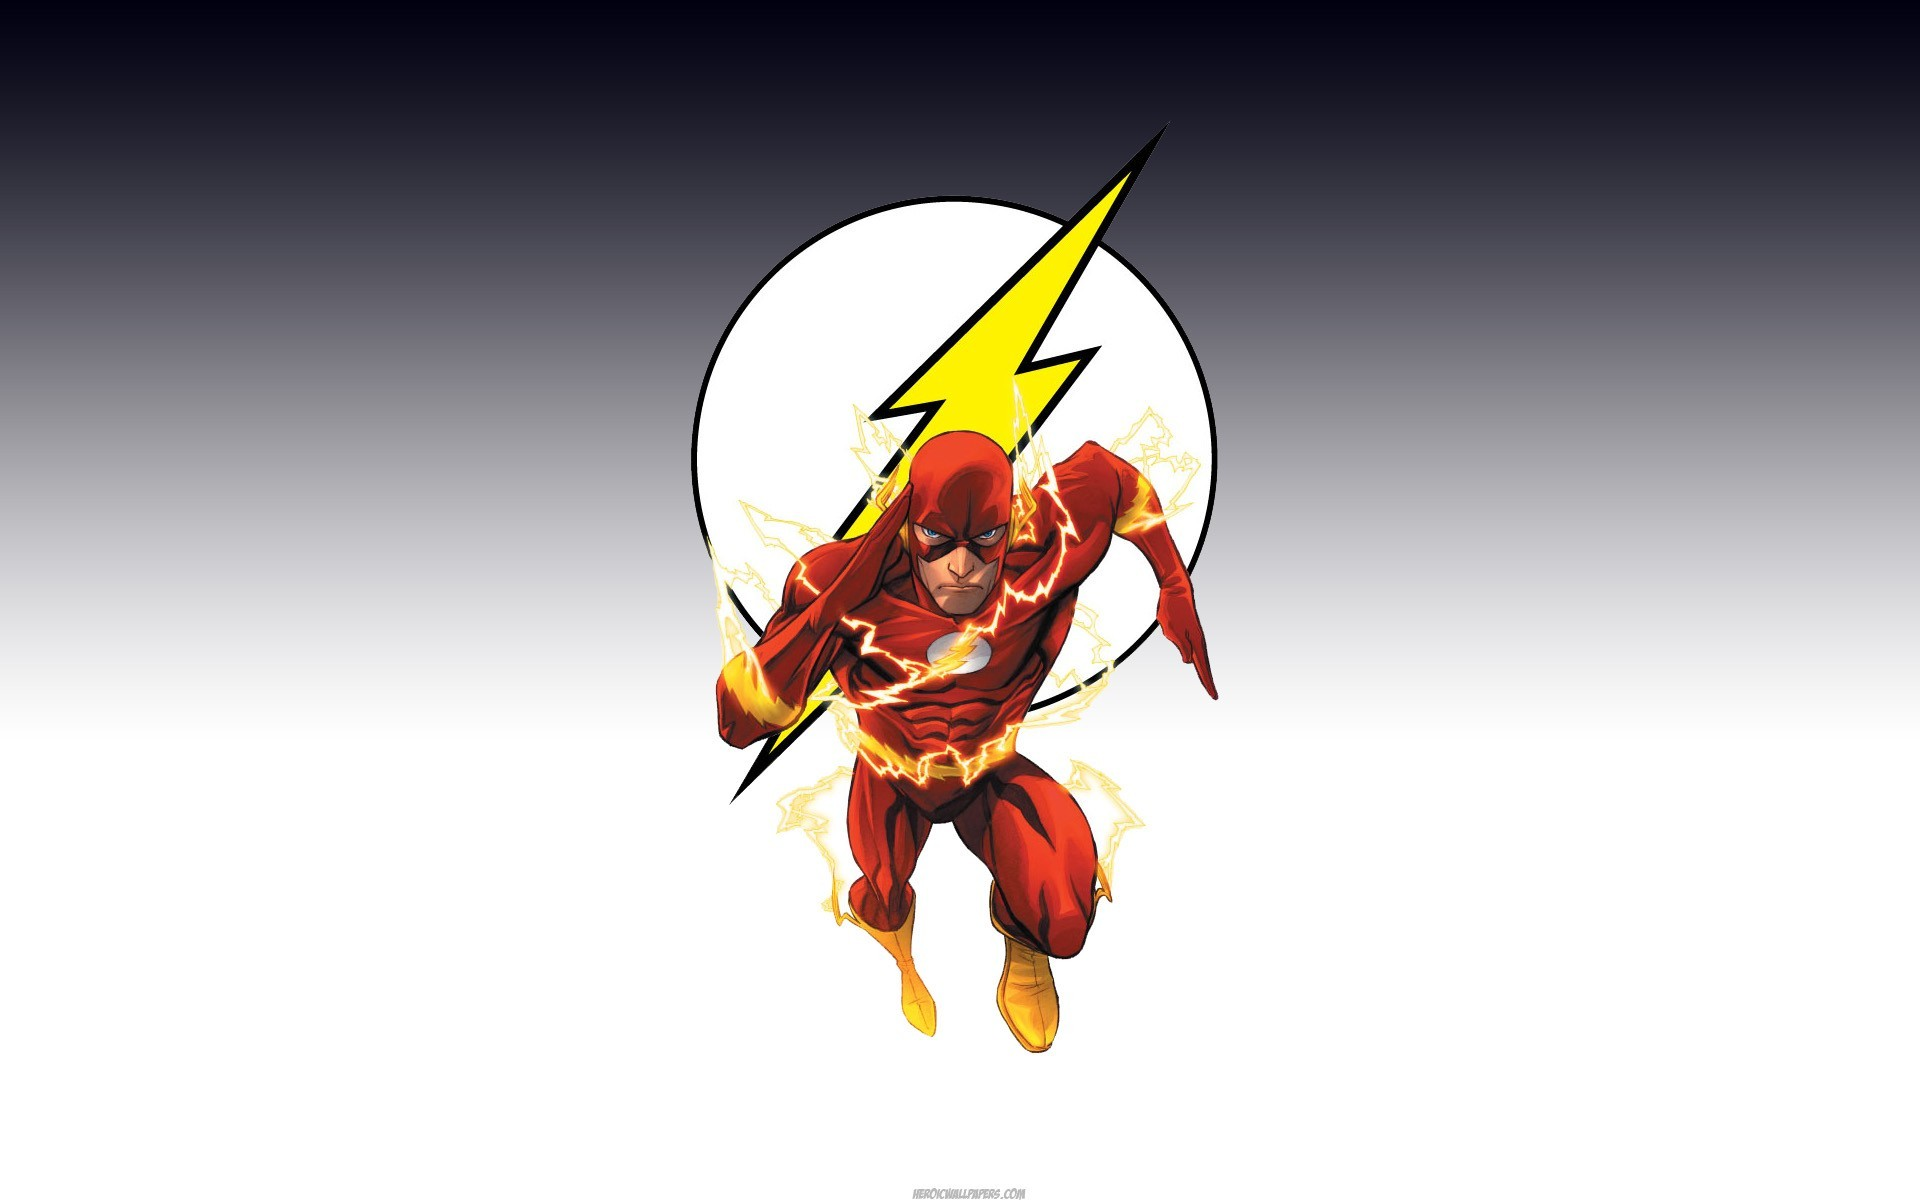 Dc comics superheroes flash comic hero wallpaper allwallpaper dc comics superheroes flash comic hero wallpaper voltagebd Choice Image